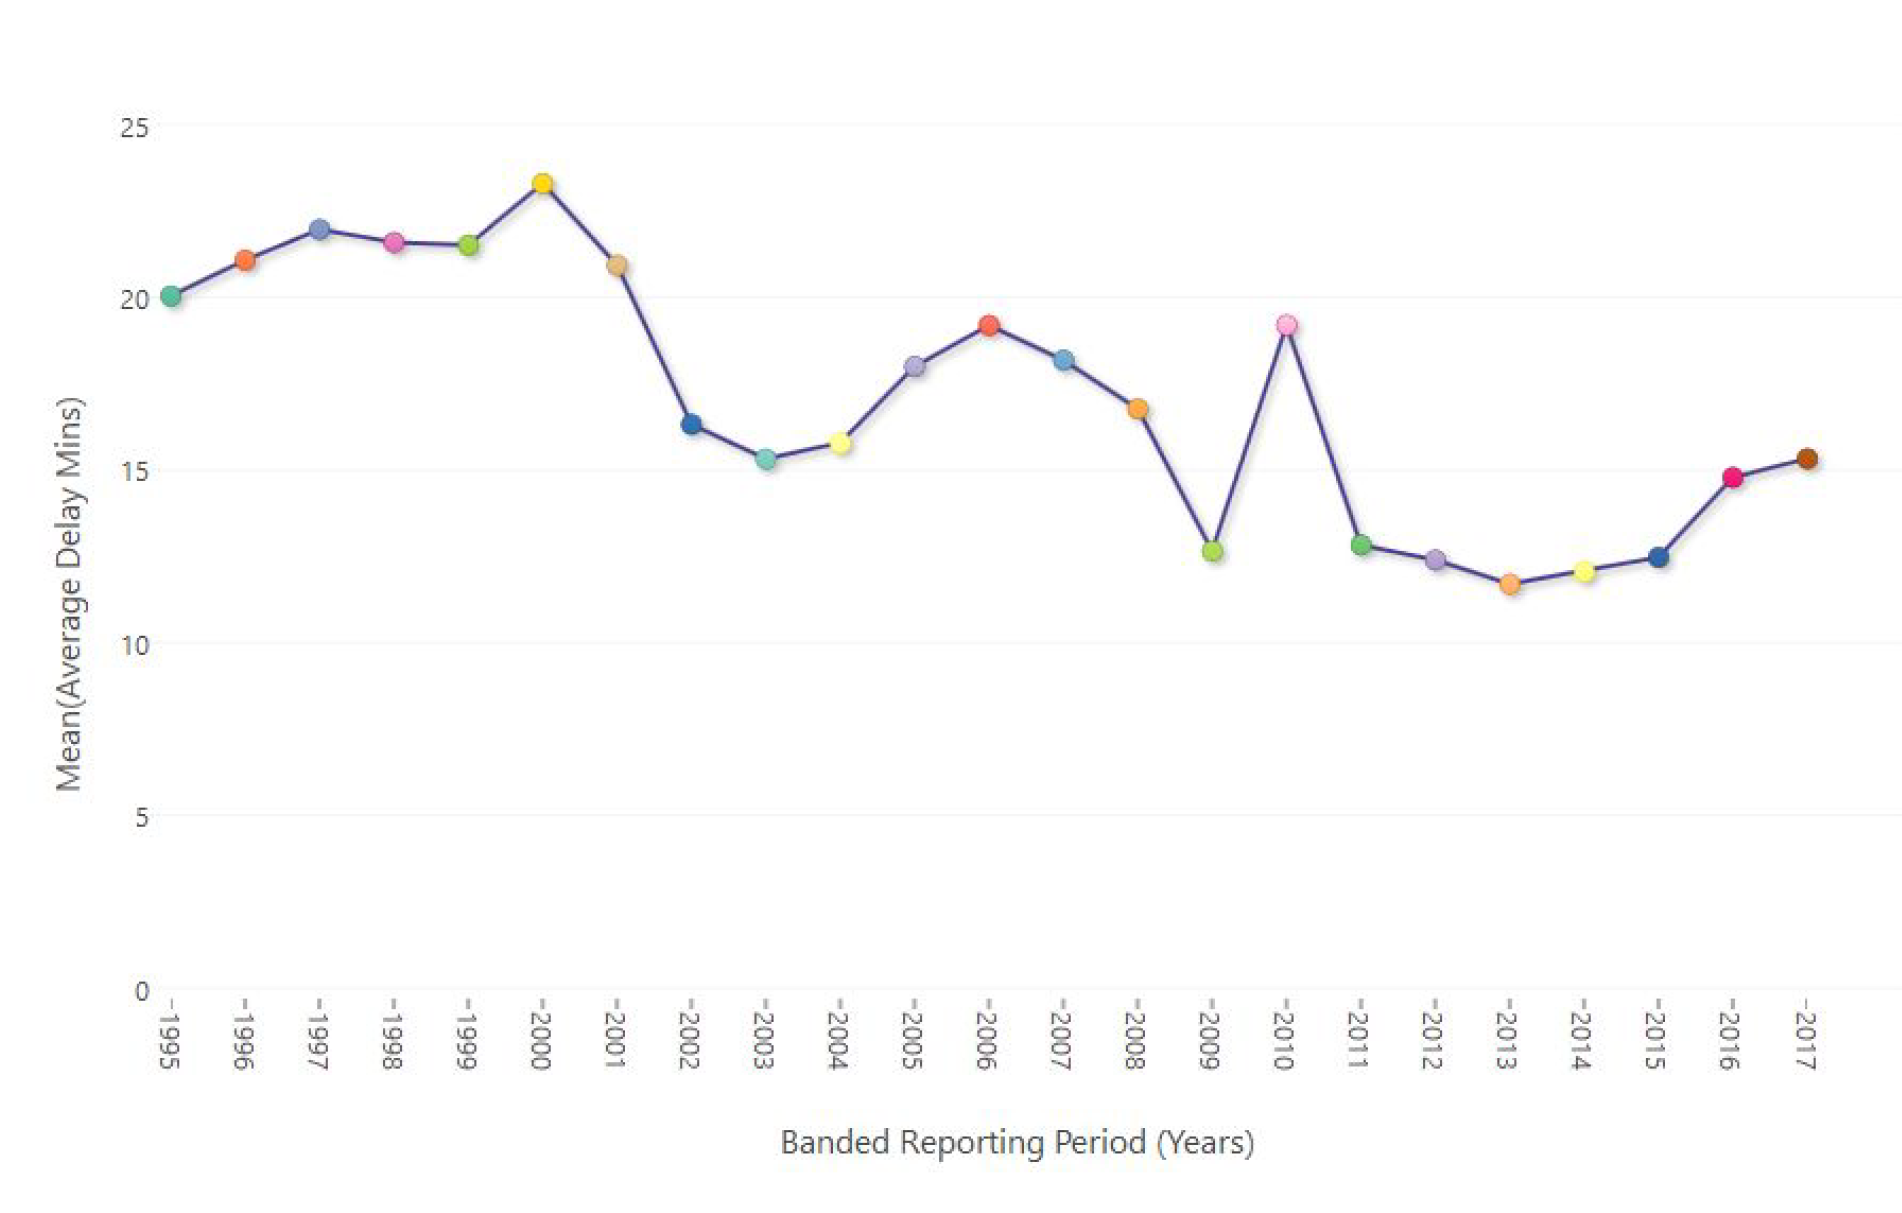 Branded Reporting Period (Years)